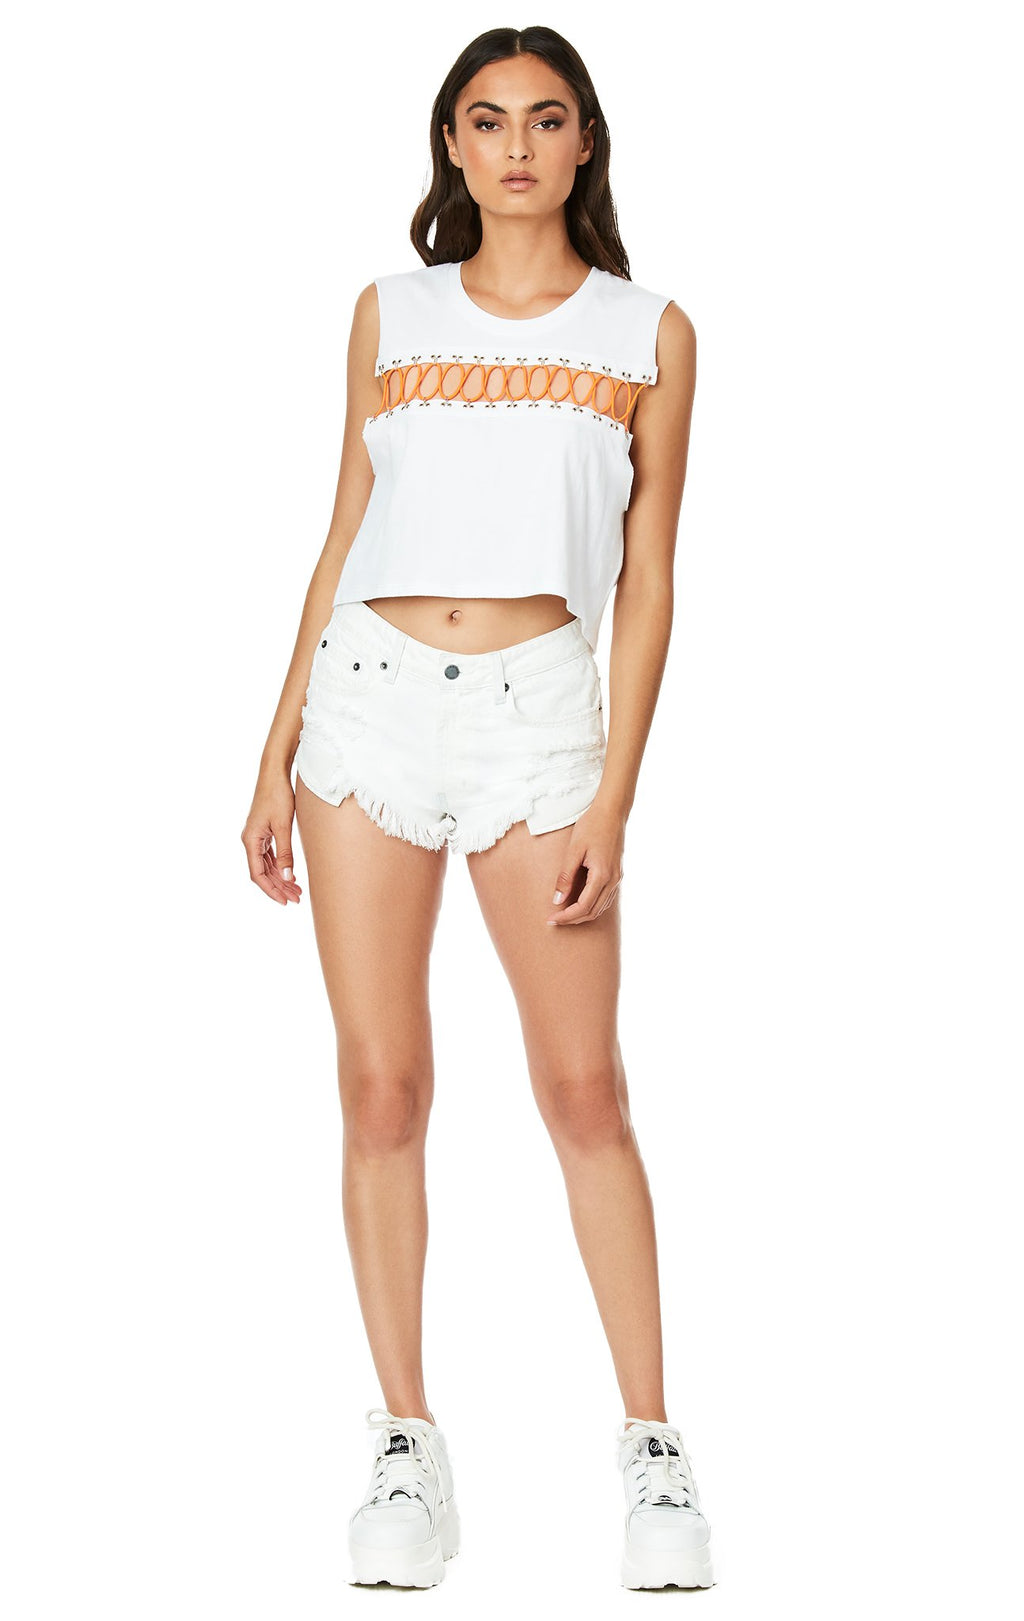 Emma & Sam: CRISS CROSS BUNGEE SLEEVELESS TEE - NOVELTY TEE